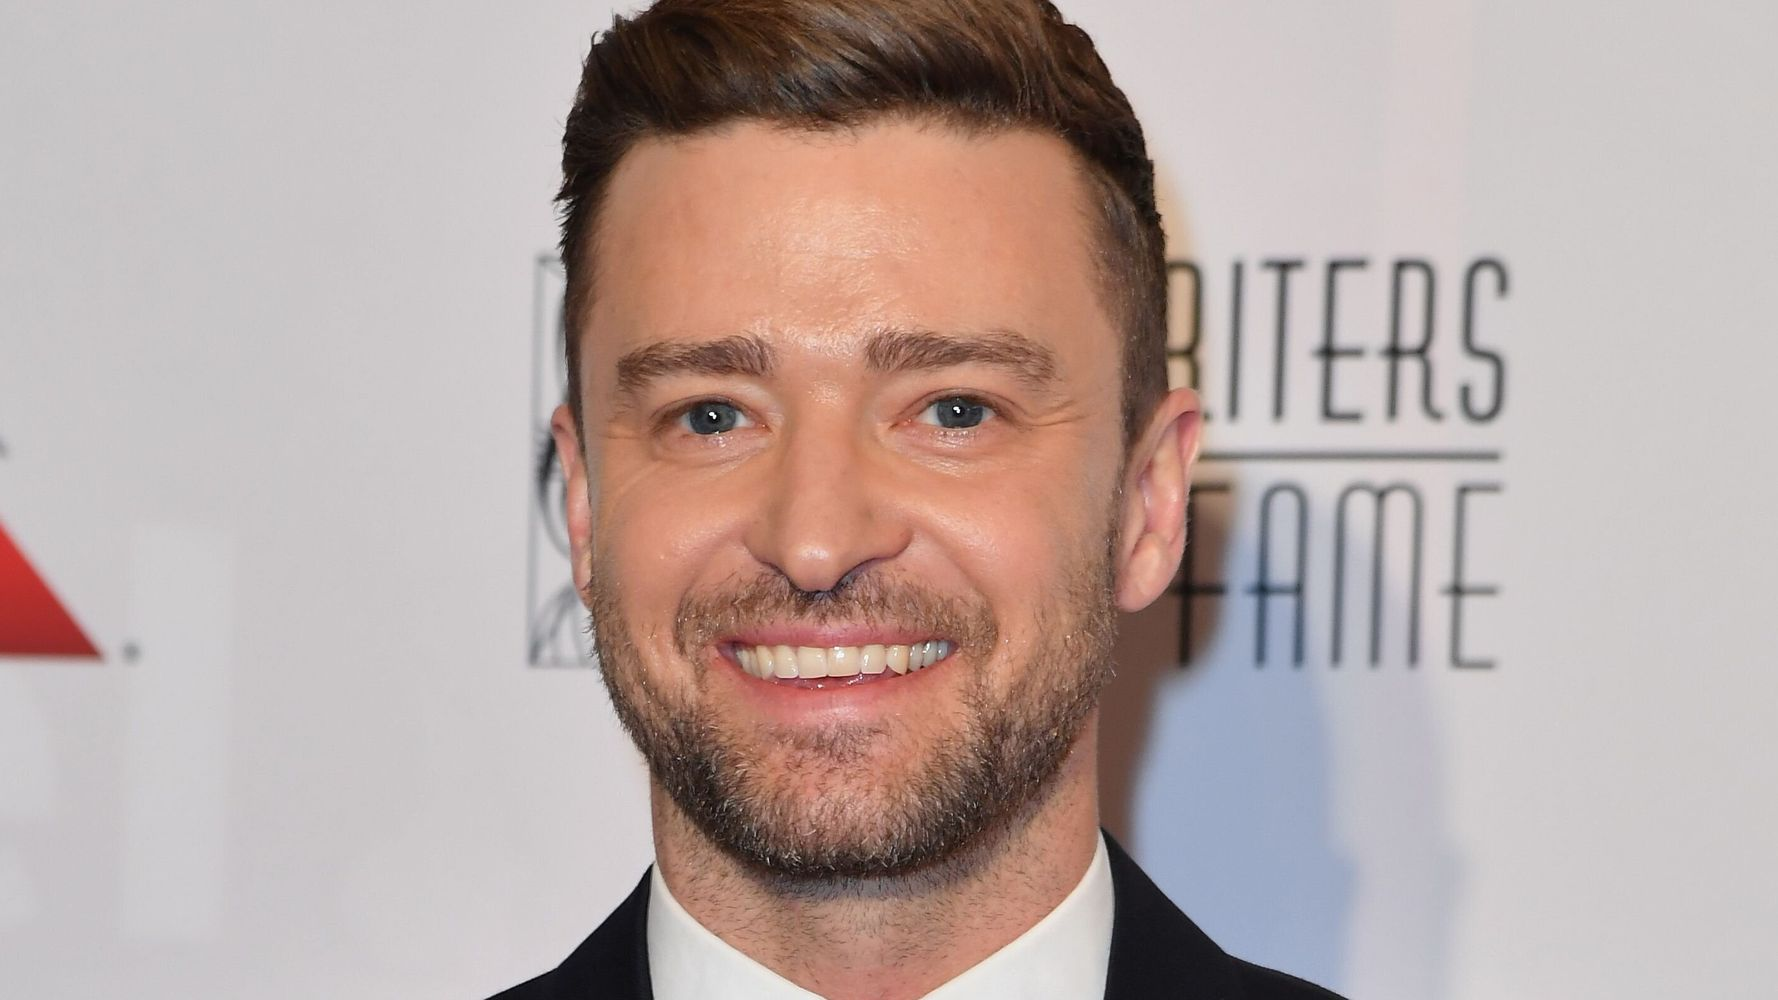 Justin Timberlake Urges America To 'Move Forward' By Removing Confederate Statues